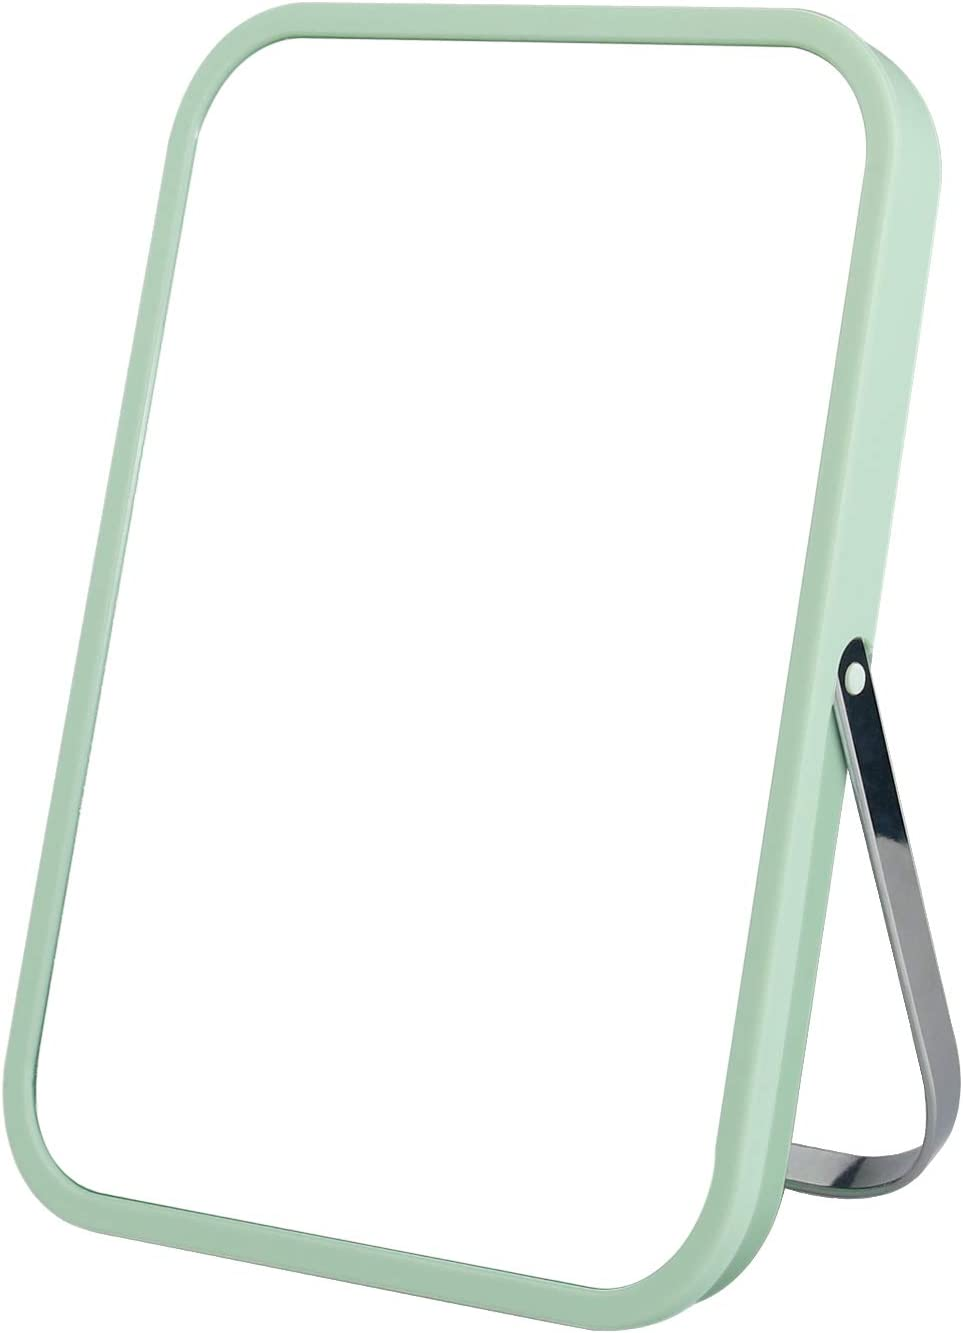 Tabletop Makeup Mirror, Square Foldable Vanity Mirror, 8-Inch Portable Folding Mirror with Metal Stand, Table Desk Standing Wall Hanging 90°Adjustable Dual-Purpose Cosmetic Mirror(Green) -